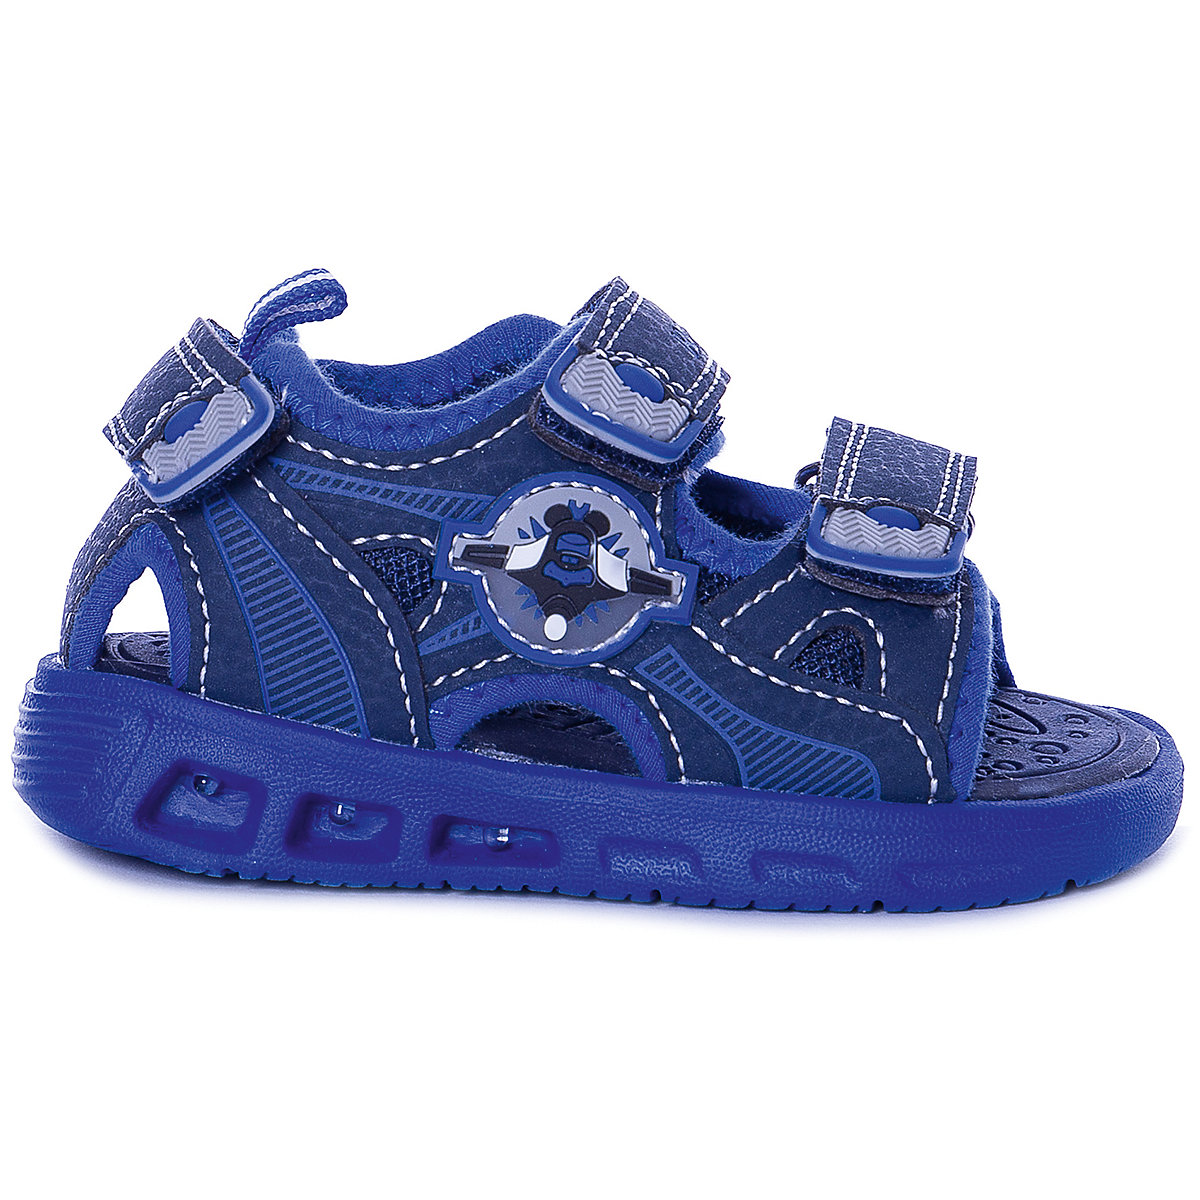 KOTOFEY Sandals 11319838 children's shoes comfortable and light girls and boys sandals adidas af3921 sports and entertainment for boys